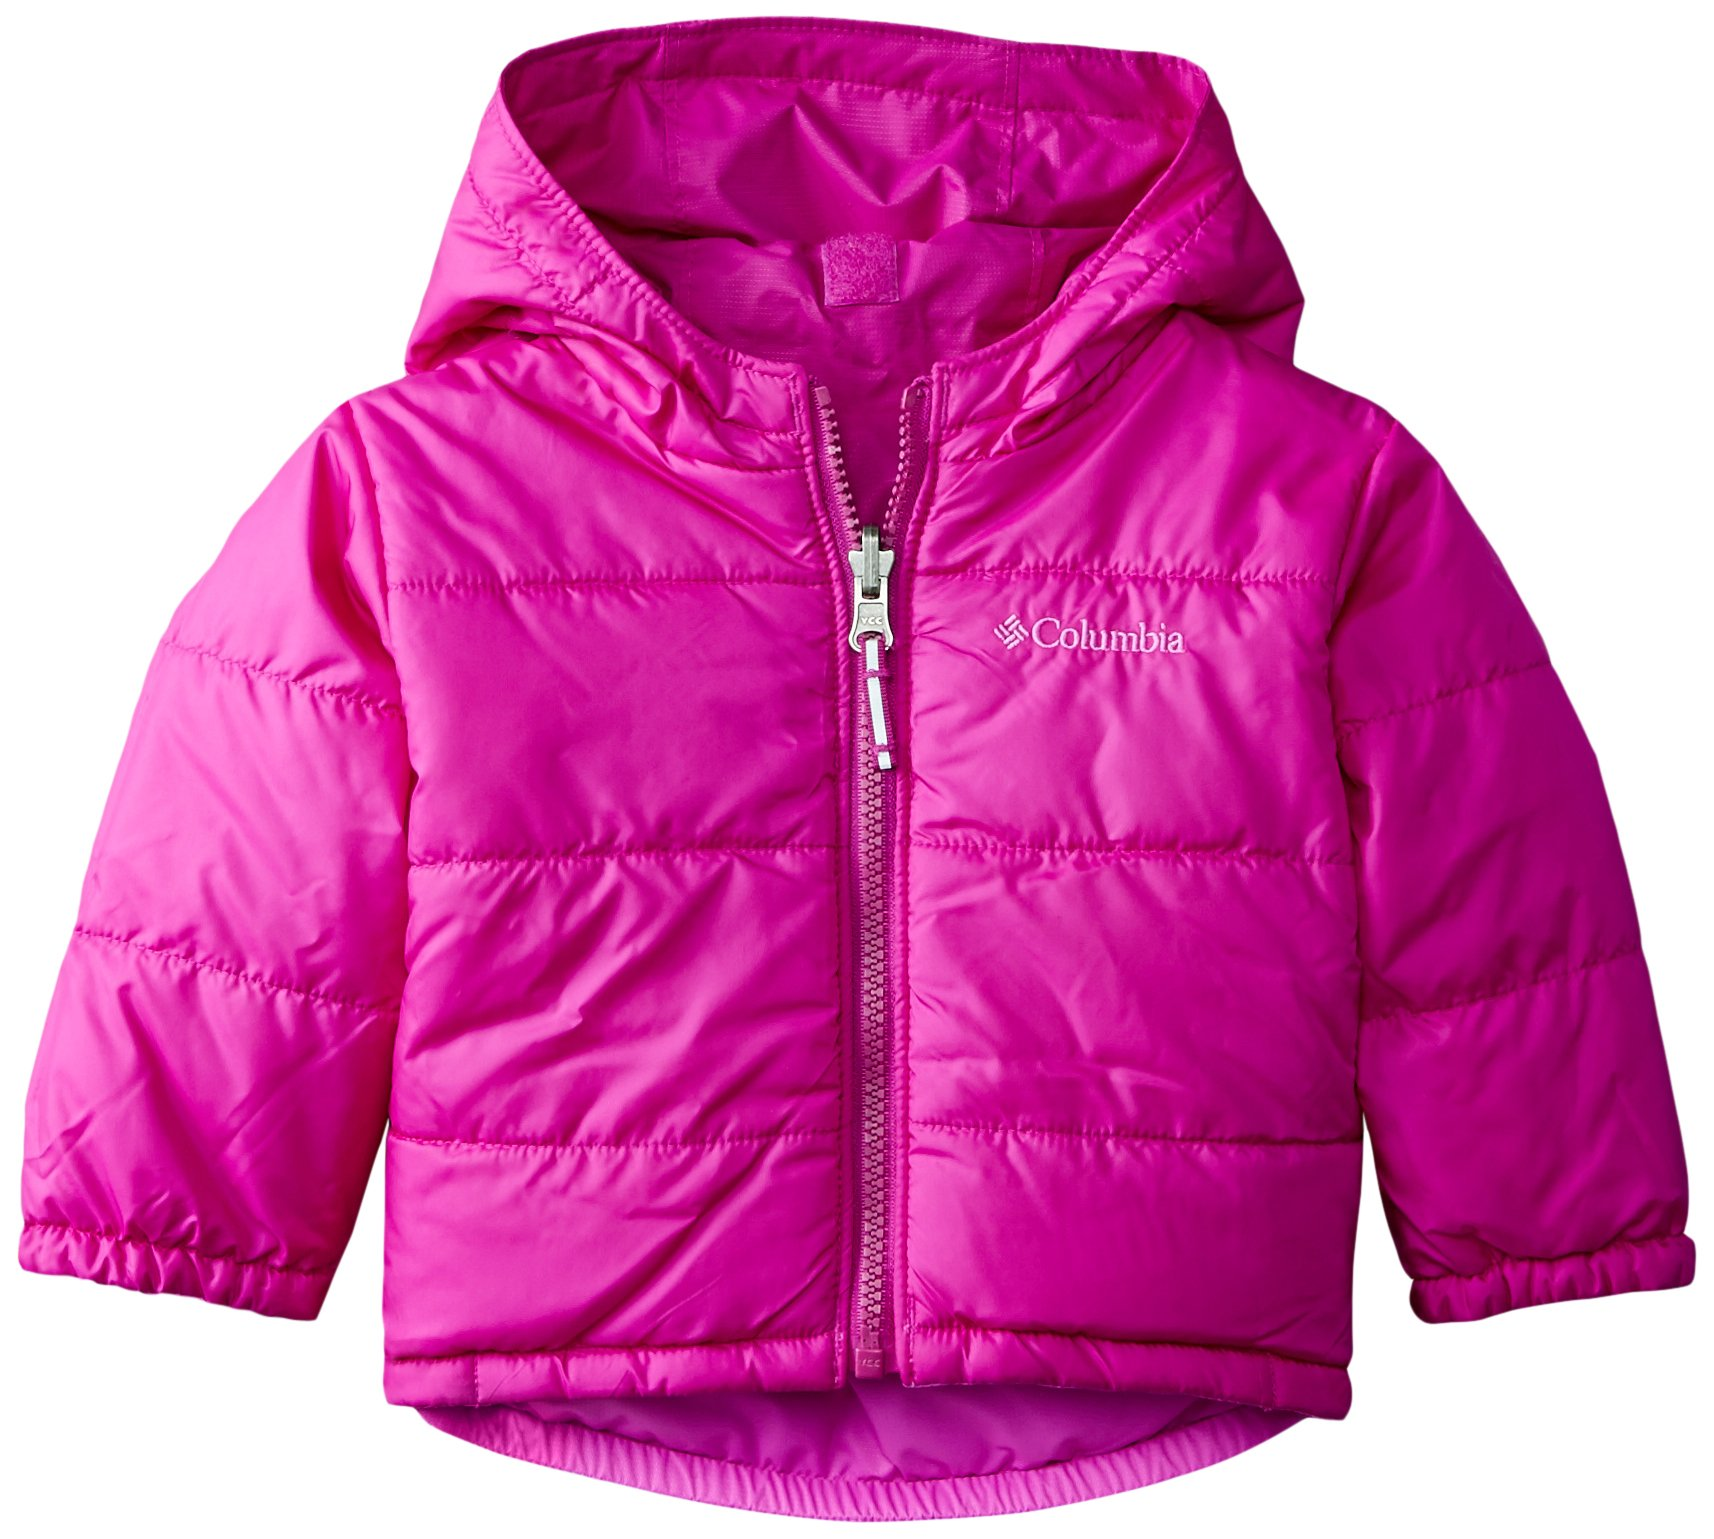 Columbia Baby Girls' Double Flake Reversible Set, Bright Plum/Foxglove, 6-12 Months by Columbia (Image #3)